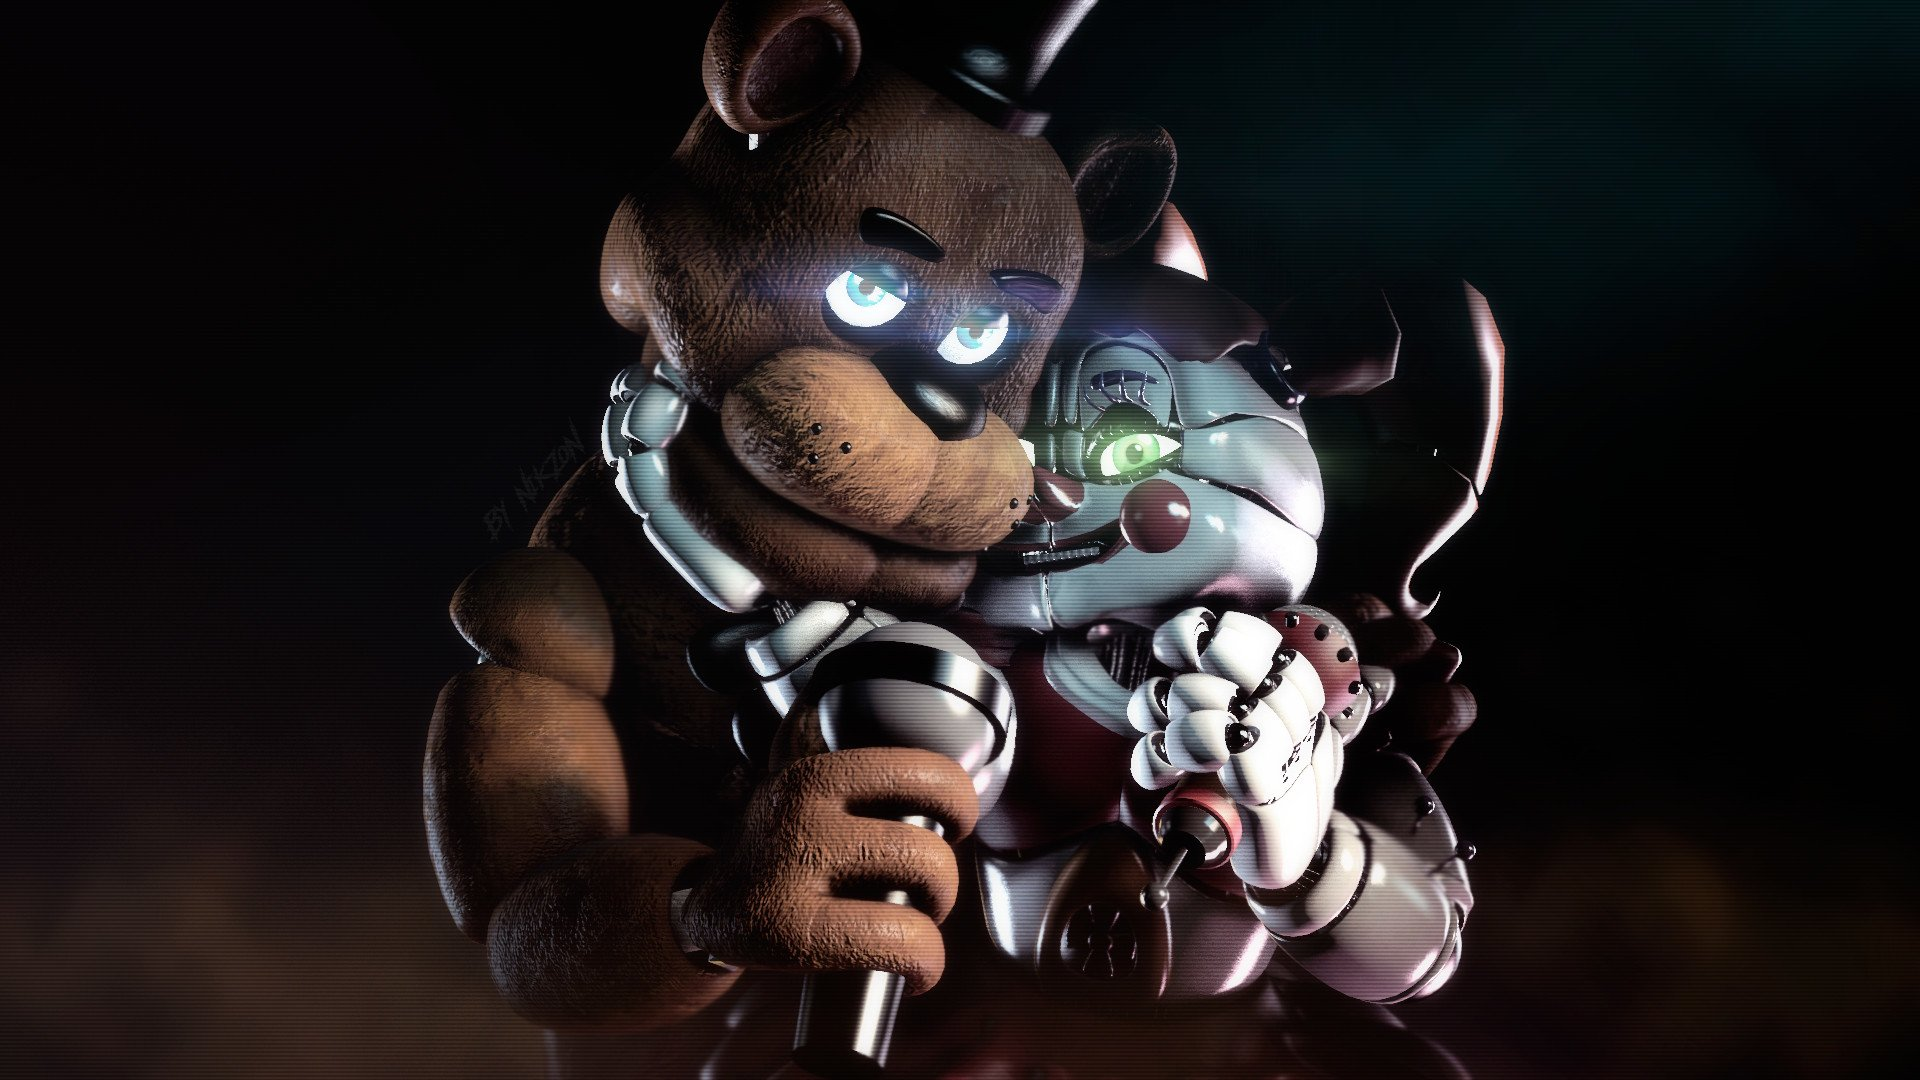 Baby Y Freddy Hd Wallpaper Background Image 1920x1080 Id